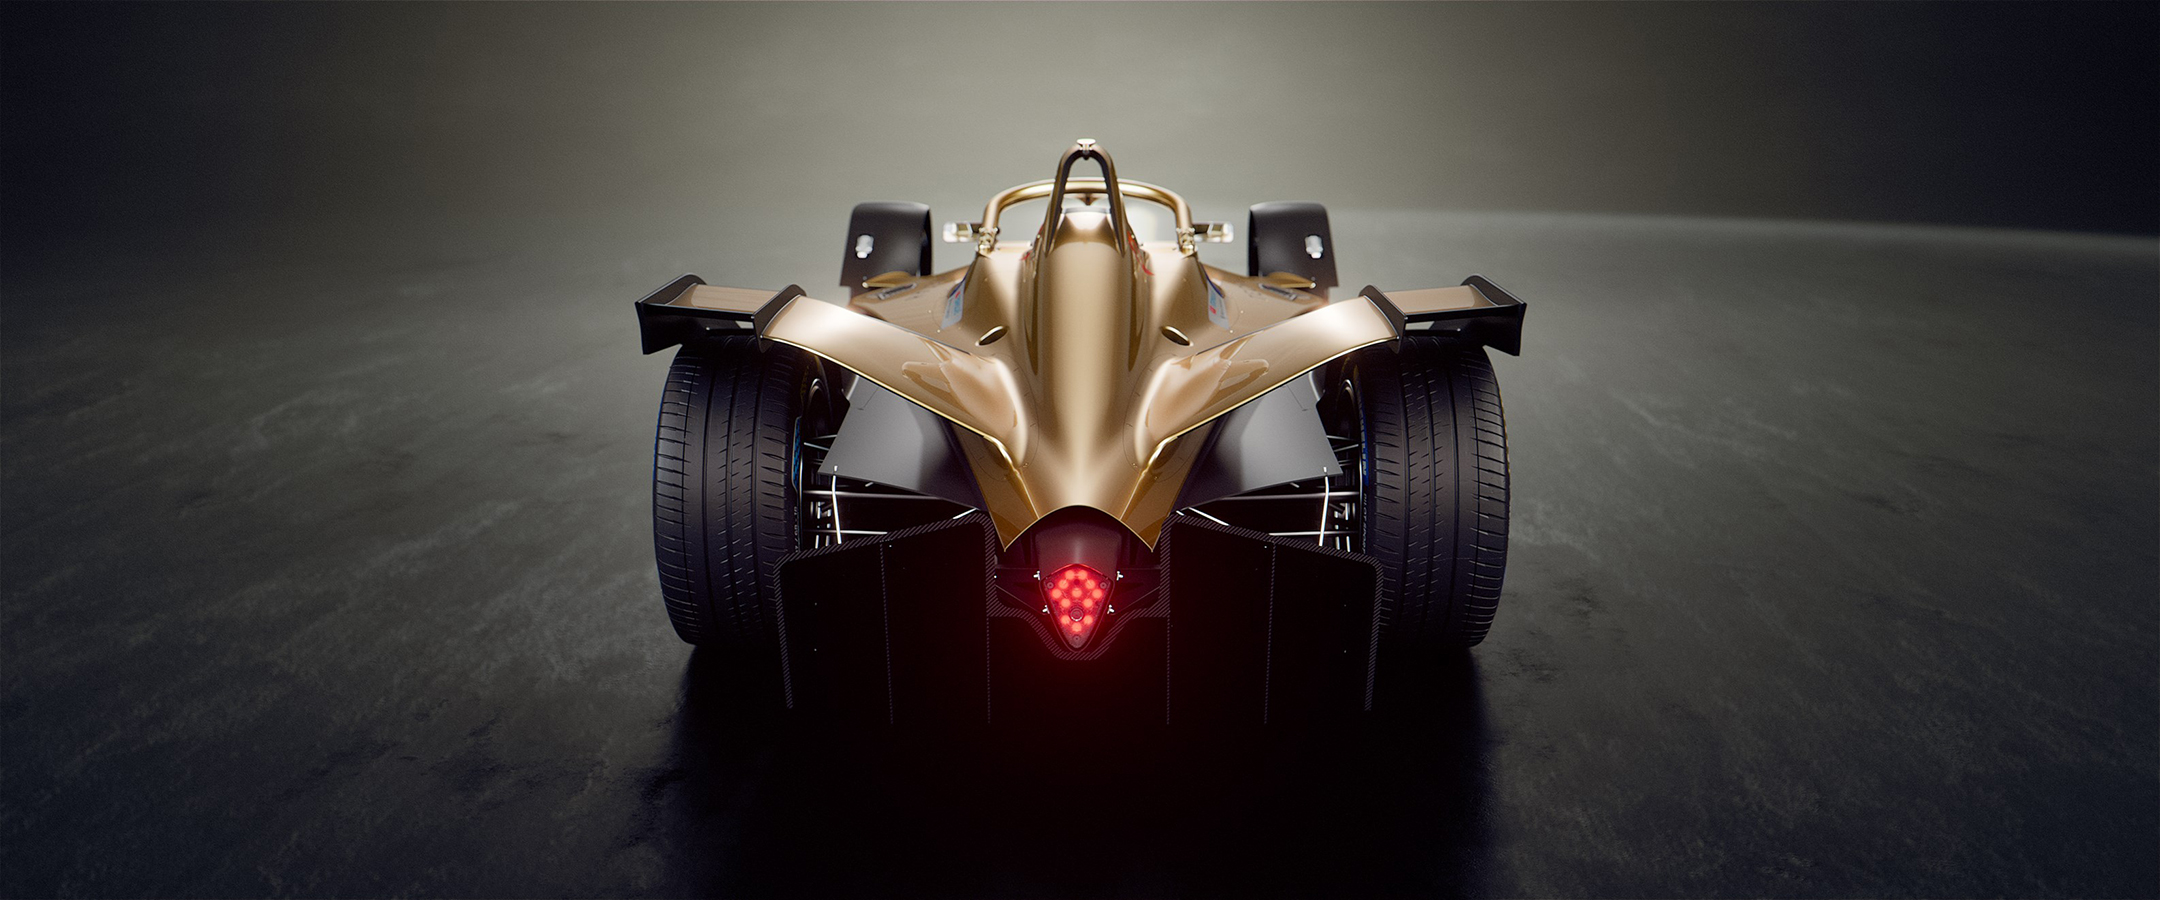 DS Techeetah E-TENSE - FormulaE 2018/2019 - rear face